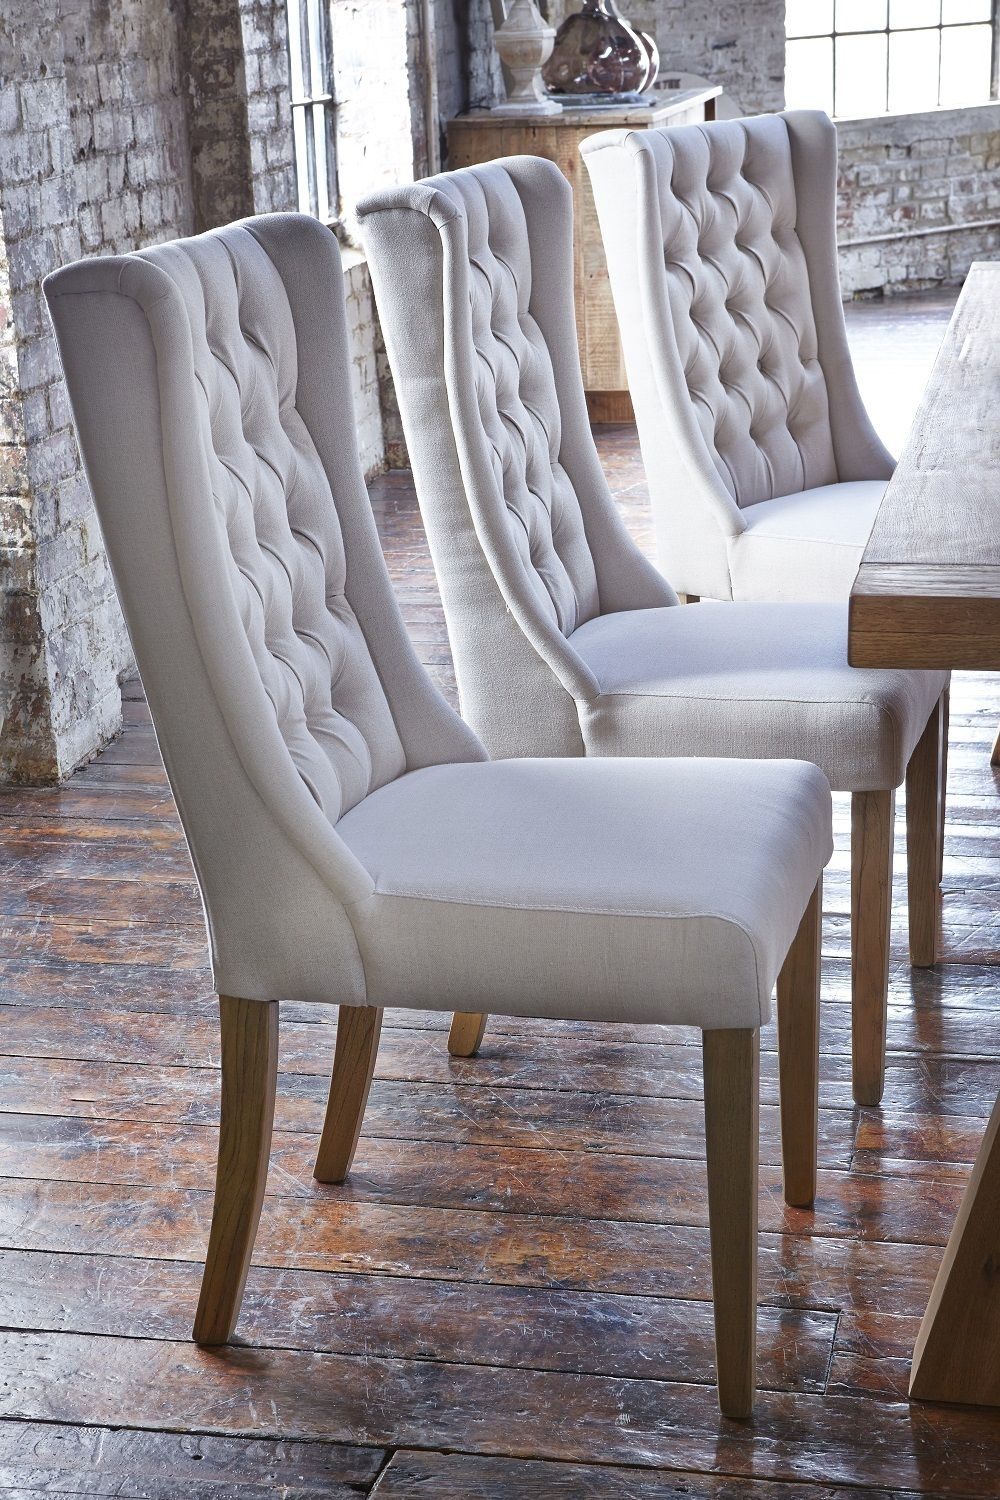 25 Exquisite Corner Breakfast Nook Ideas In Various Styles | Decor Within Most Recent Market 6 Piece Dining Sets With Host And Side Chairs (Image 2 of 20)